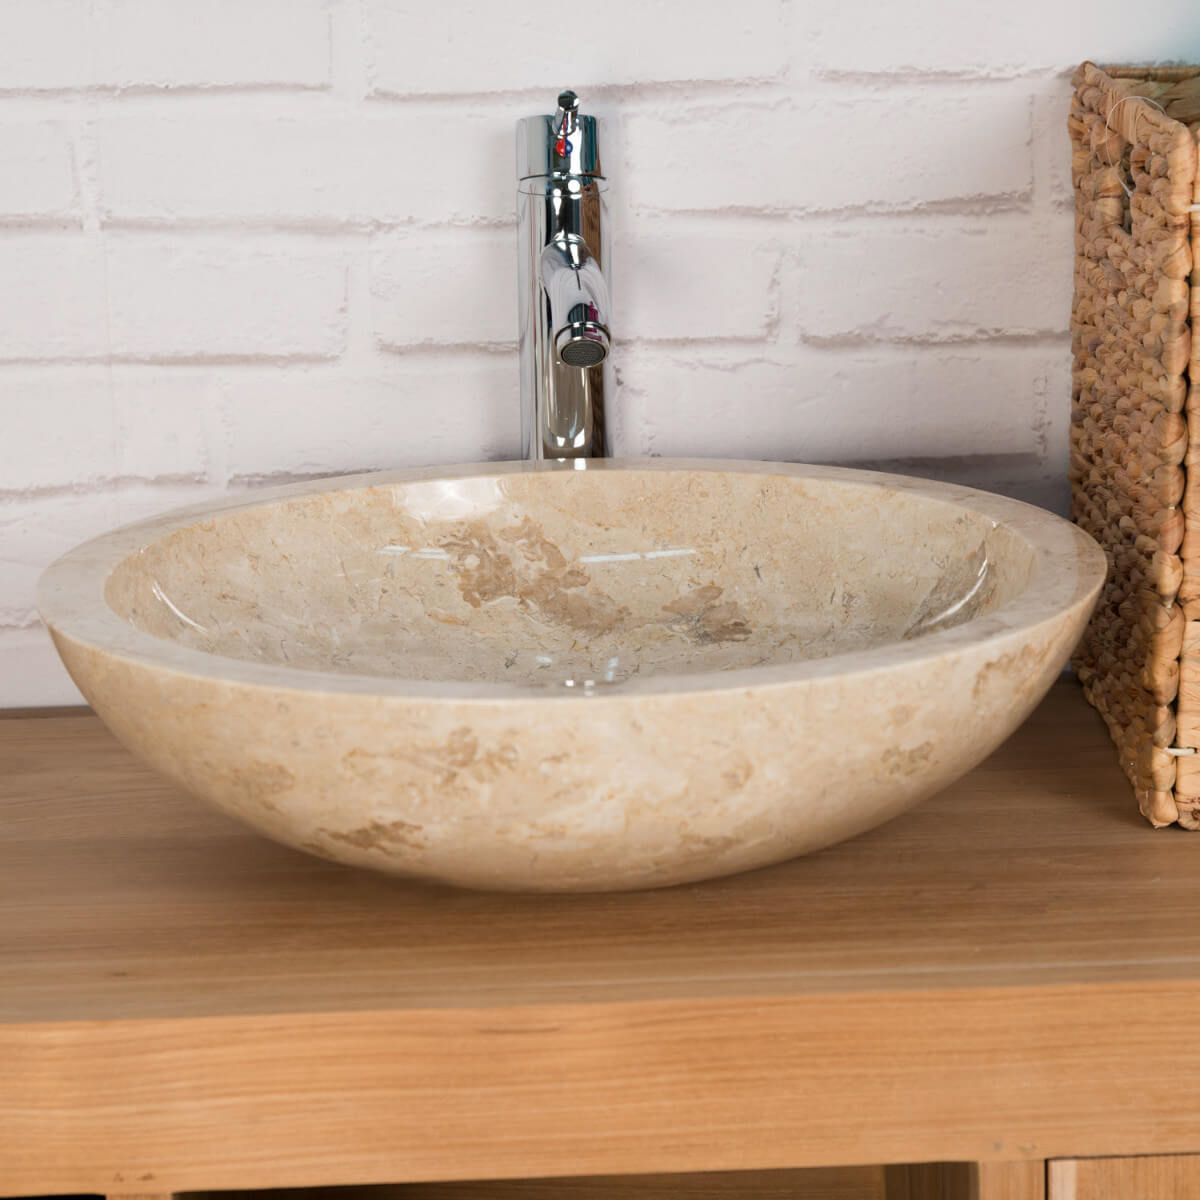 Vasque poser en marbre barcelone ronde cr me d 45 cm for Vasque salle de bain a poser